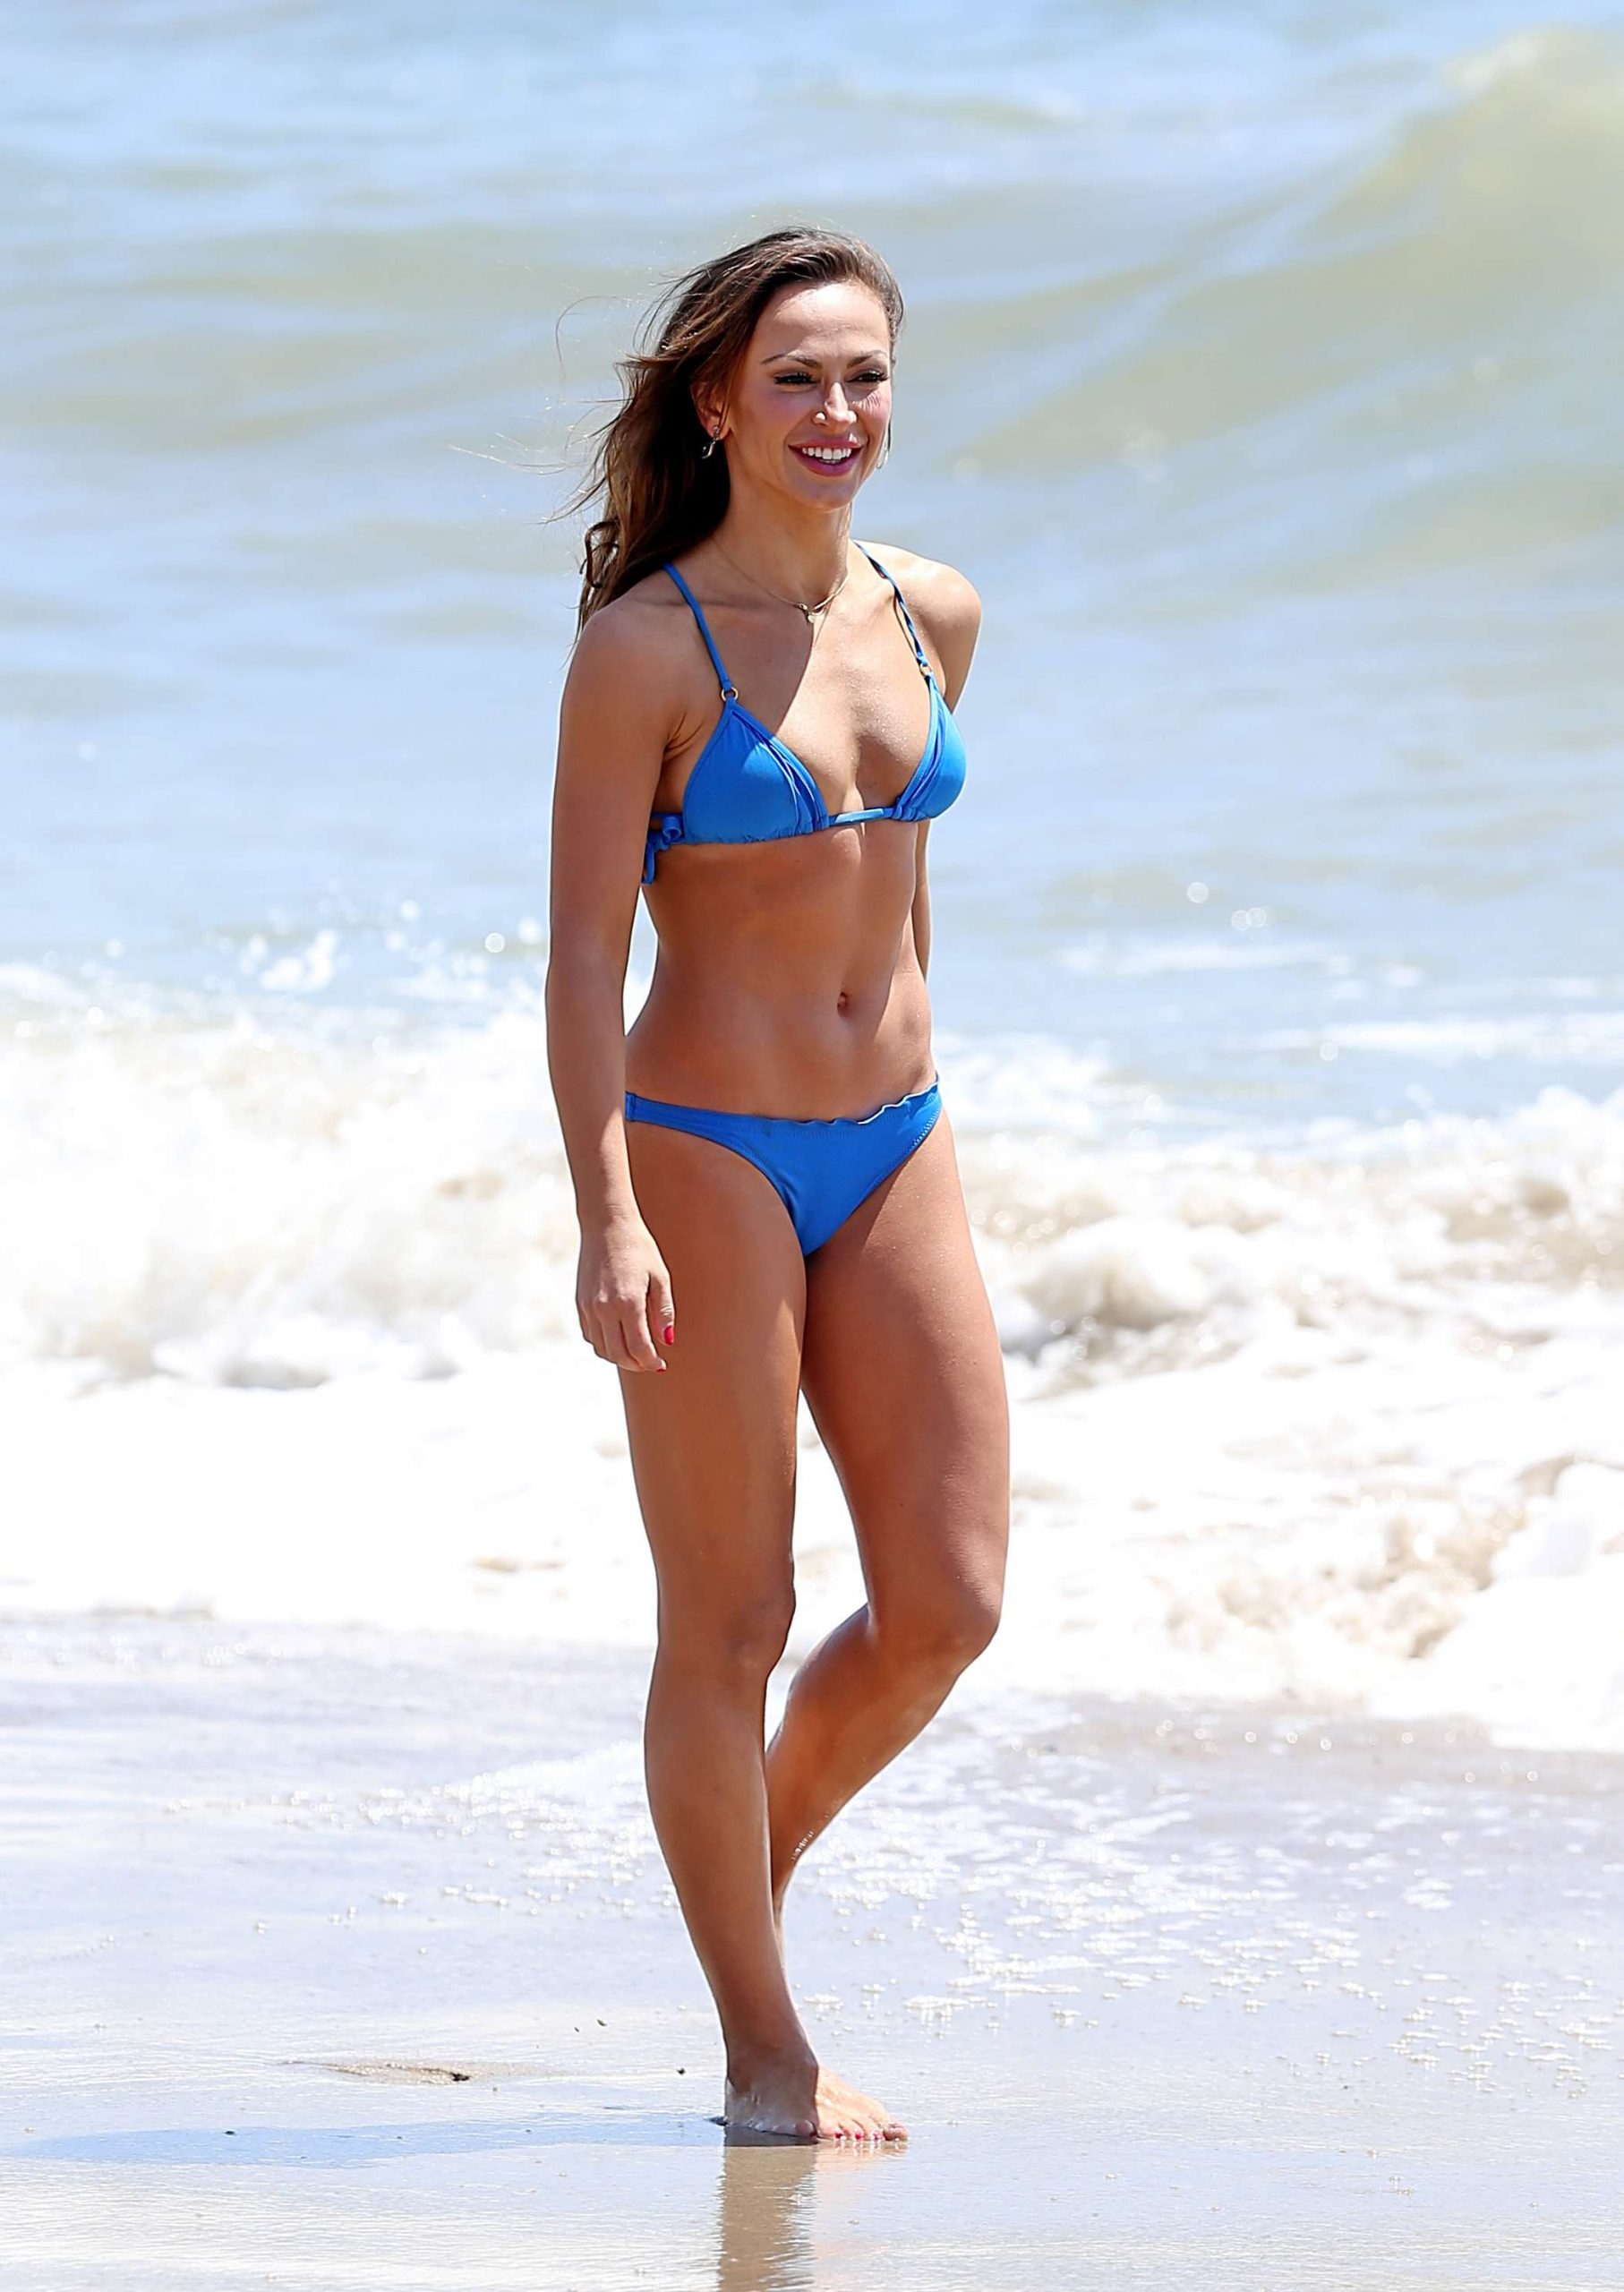 EXCLUSIVE: Karina Smirnoff looks stunning as she hits the beach showing off her bikini body.The star was spotted stepping out in the figure-hugging swimsuit in Malibu.